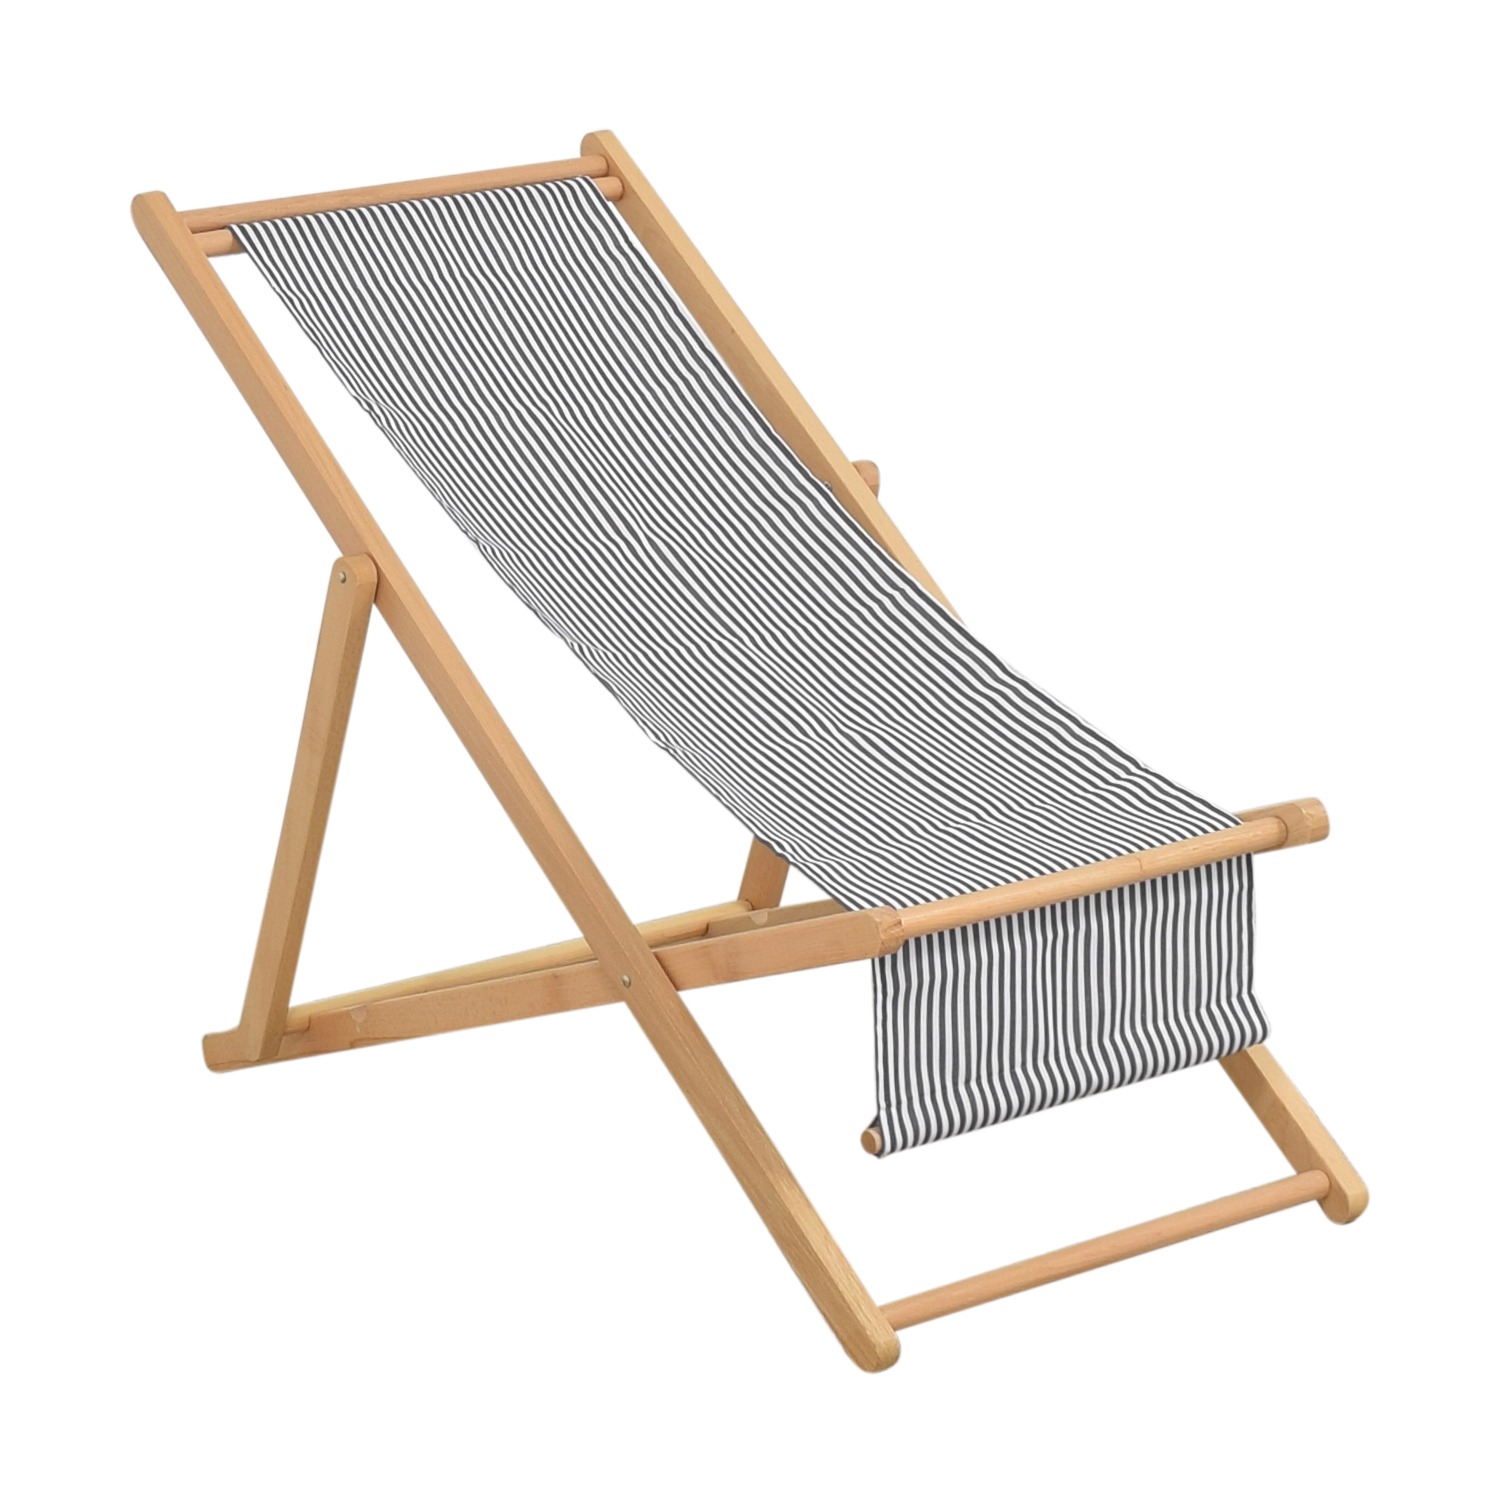 The Inside The Inside Cabana Chair with Sling blue, white and light brown